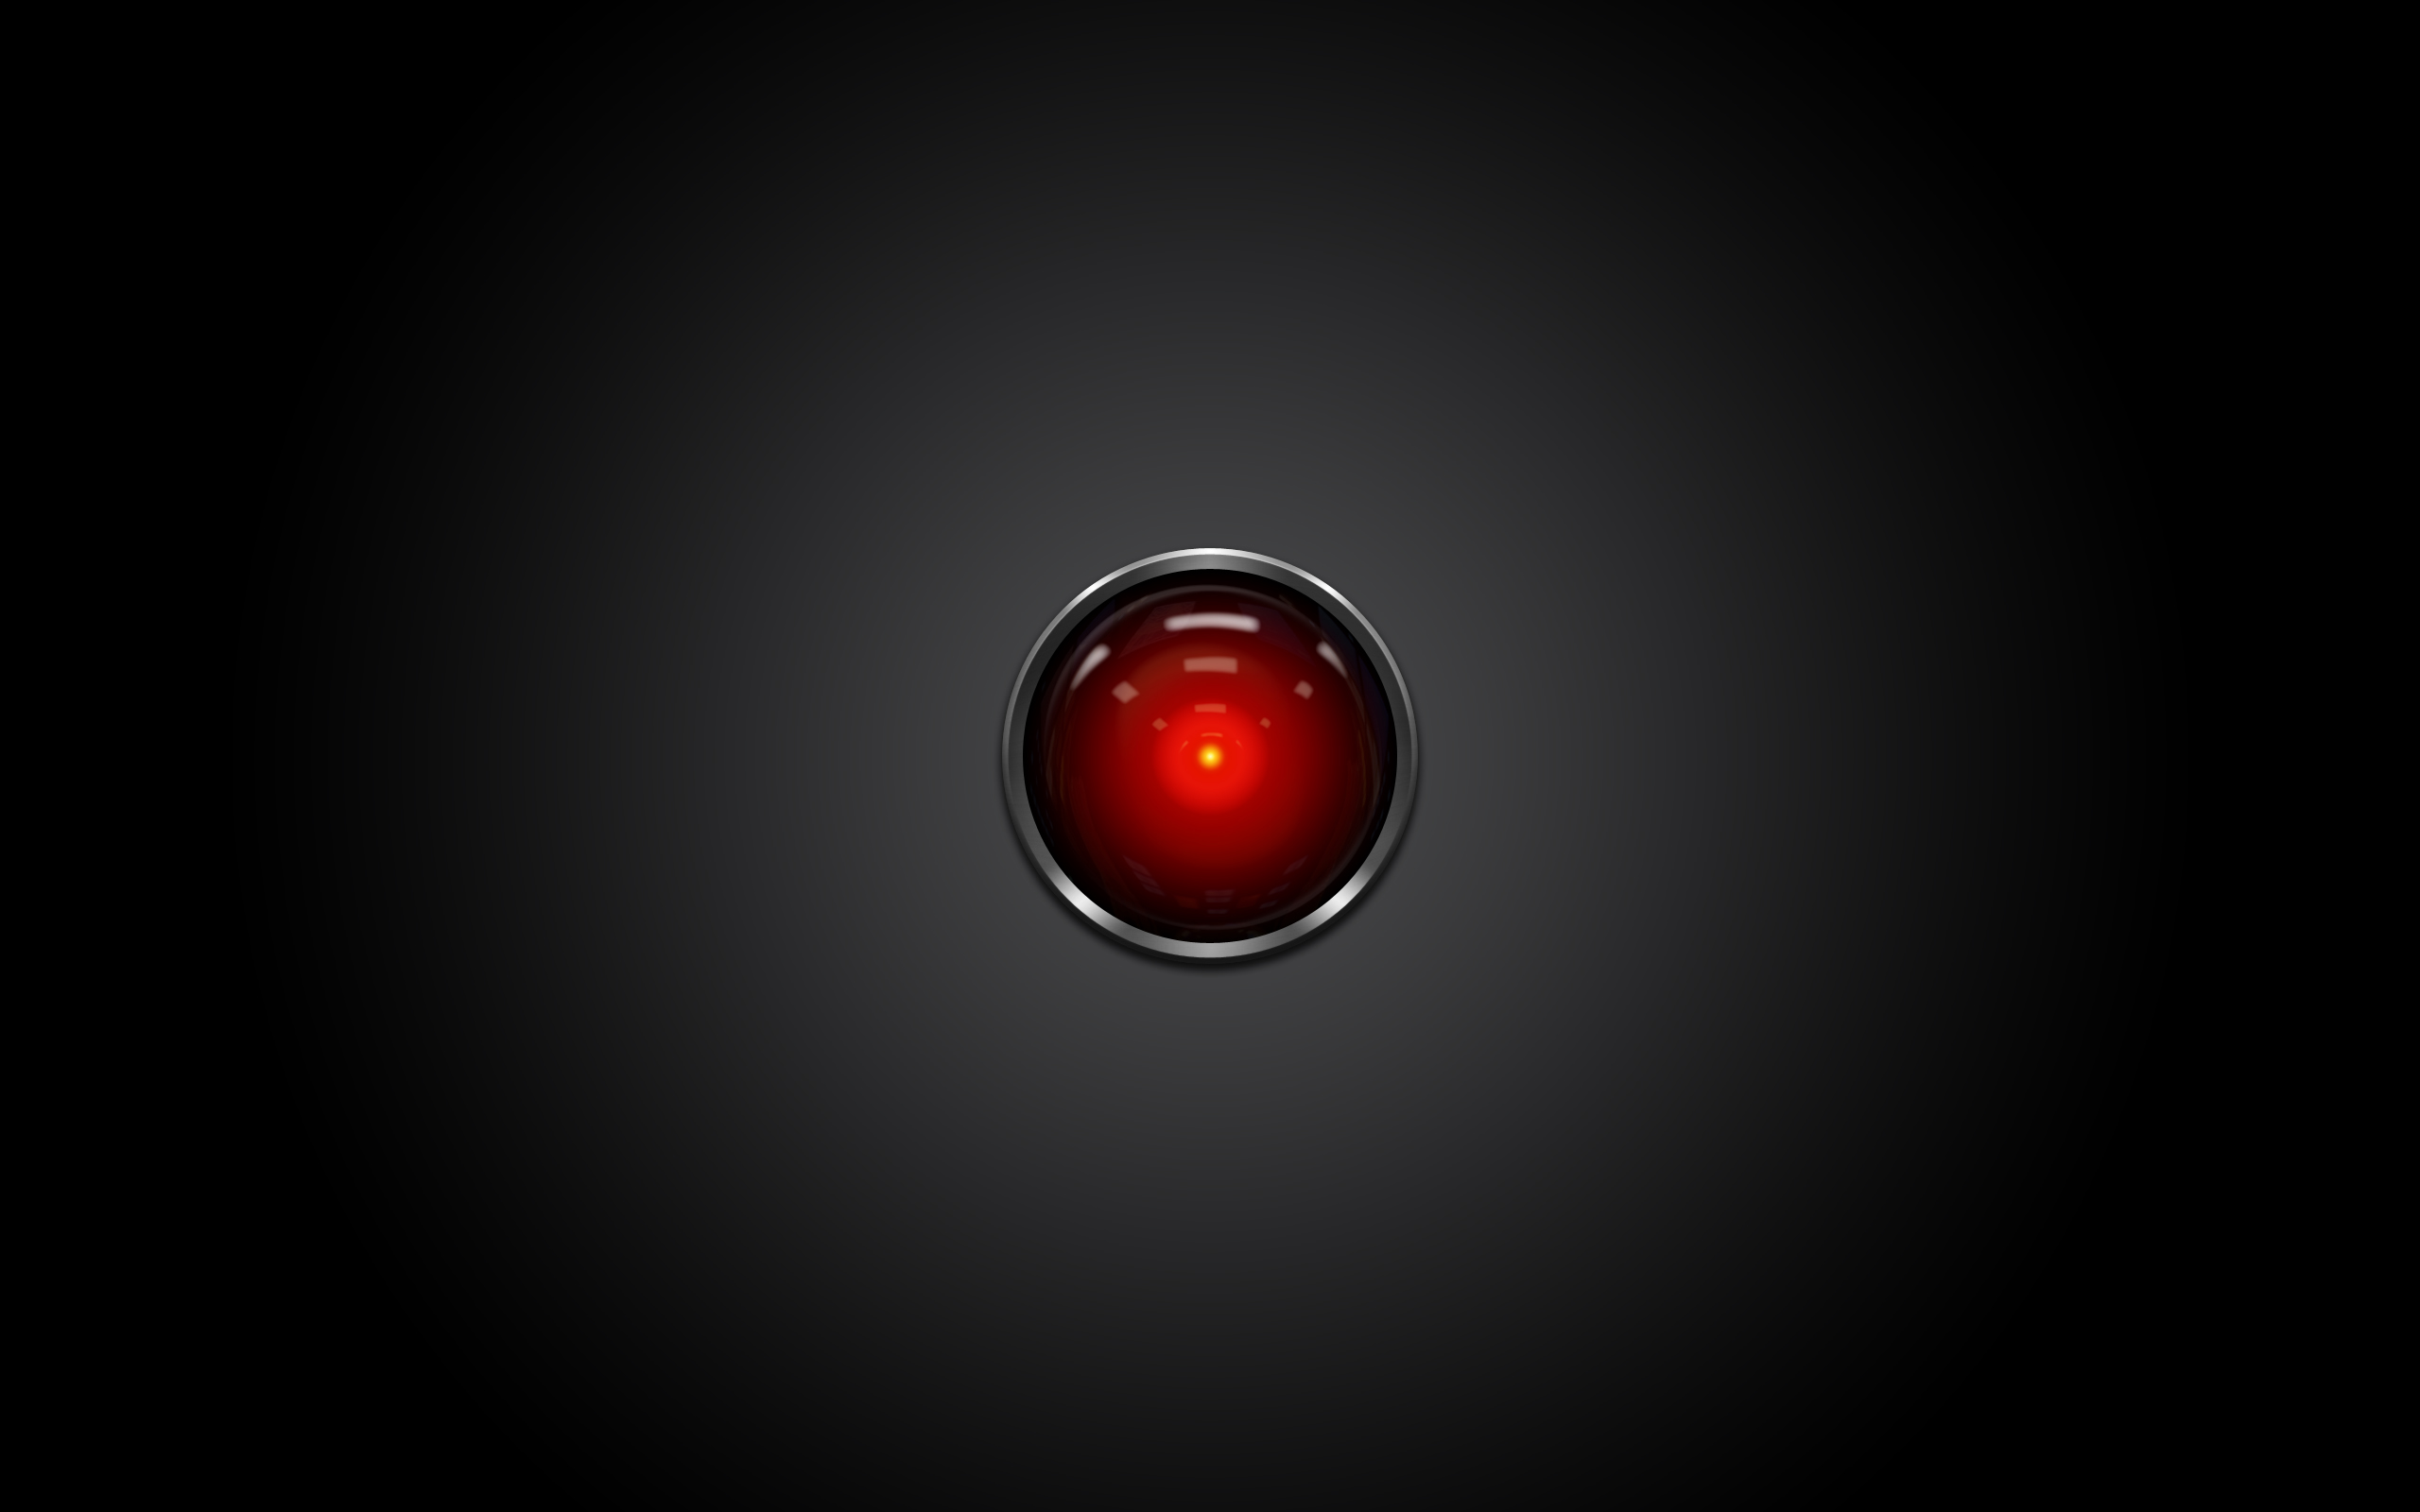 Space odyssey hal 9000 wallpaper 2560x1600 2867 - Space odyssey wallpaper ...